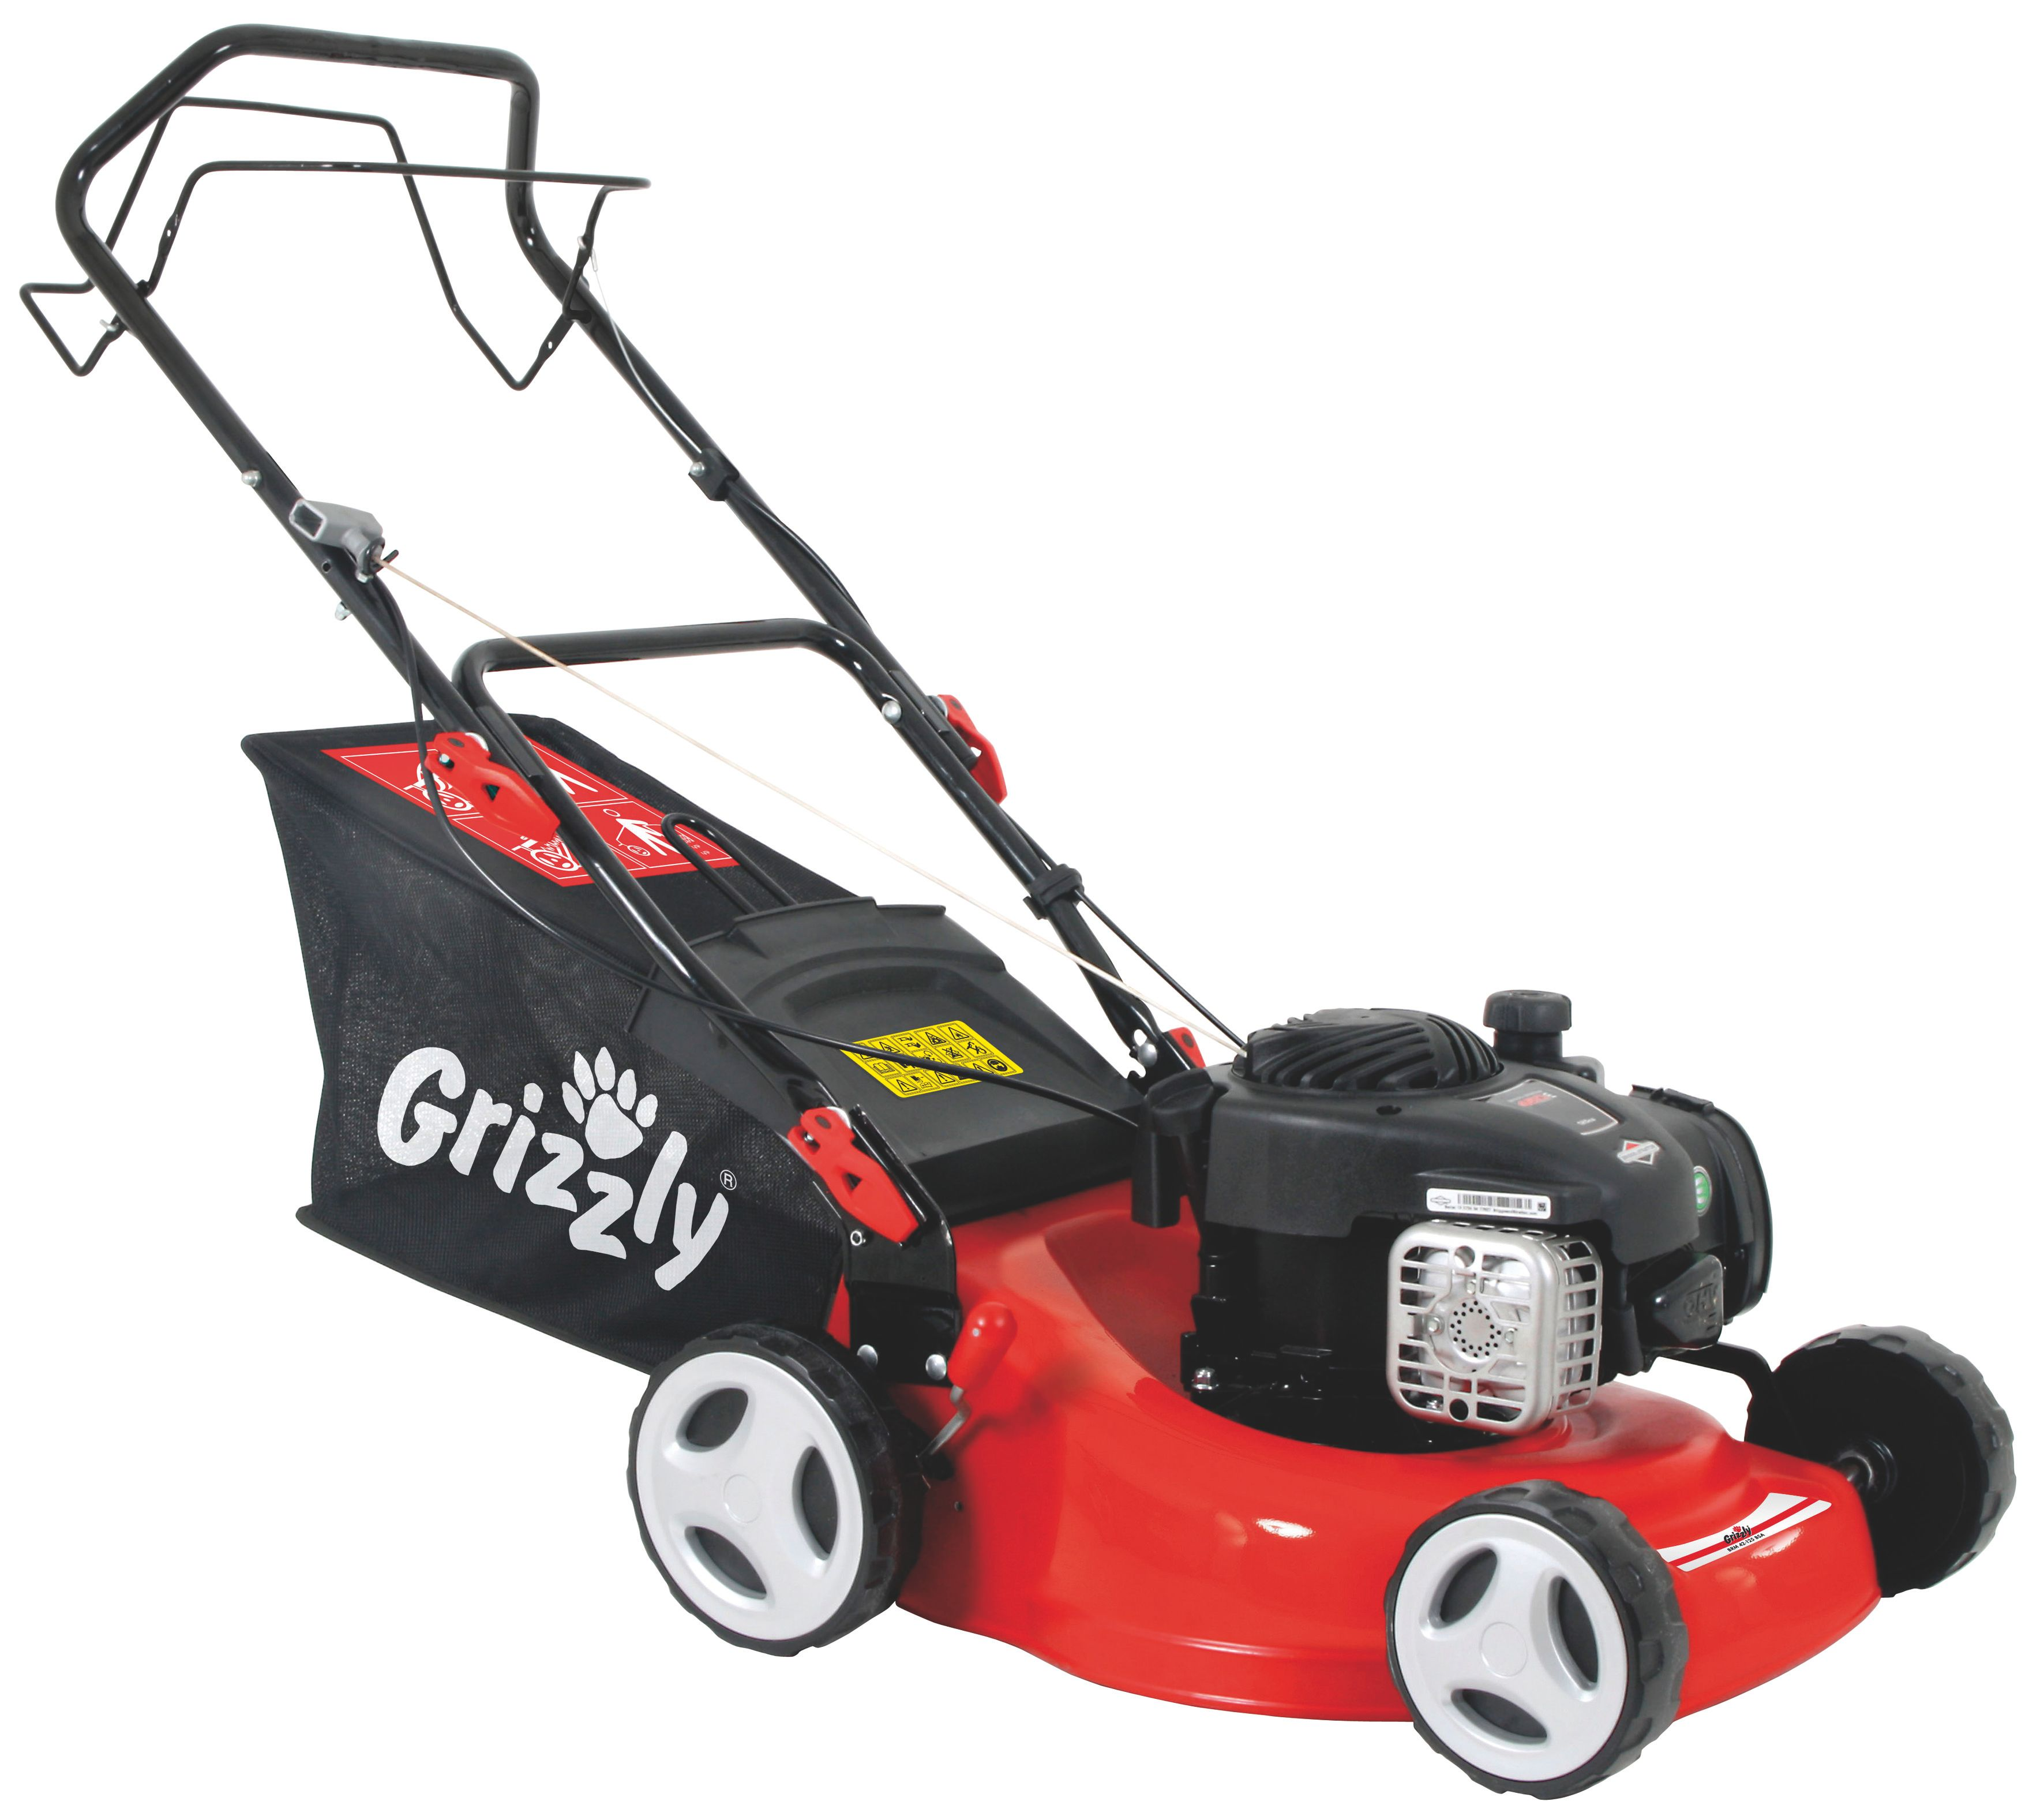 Image of Grizzly Petrol lawn mower